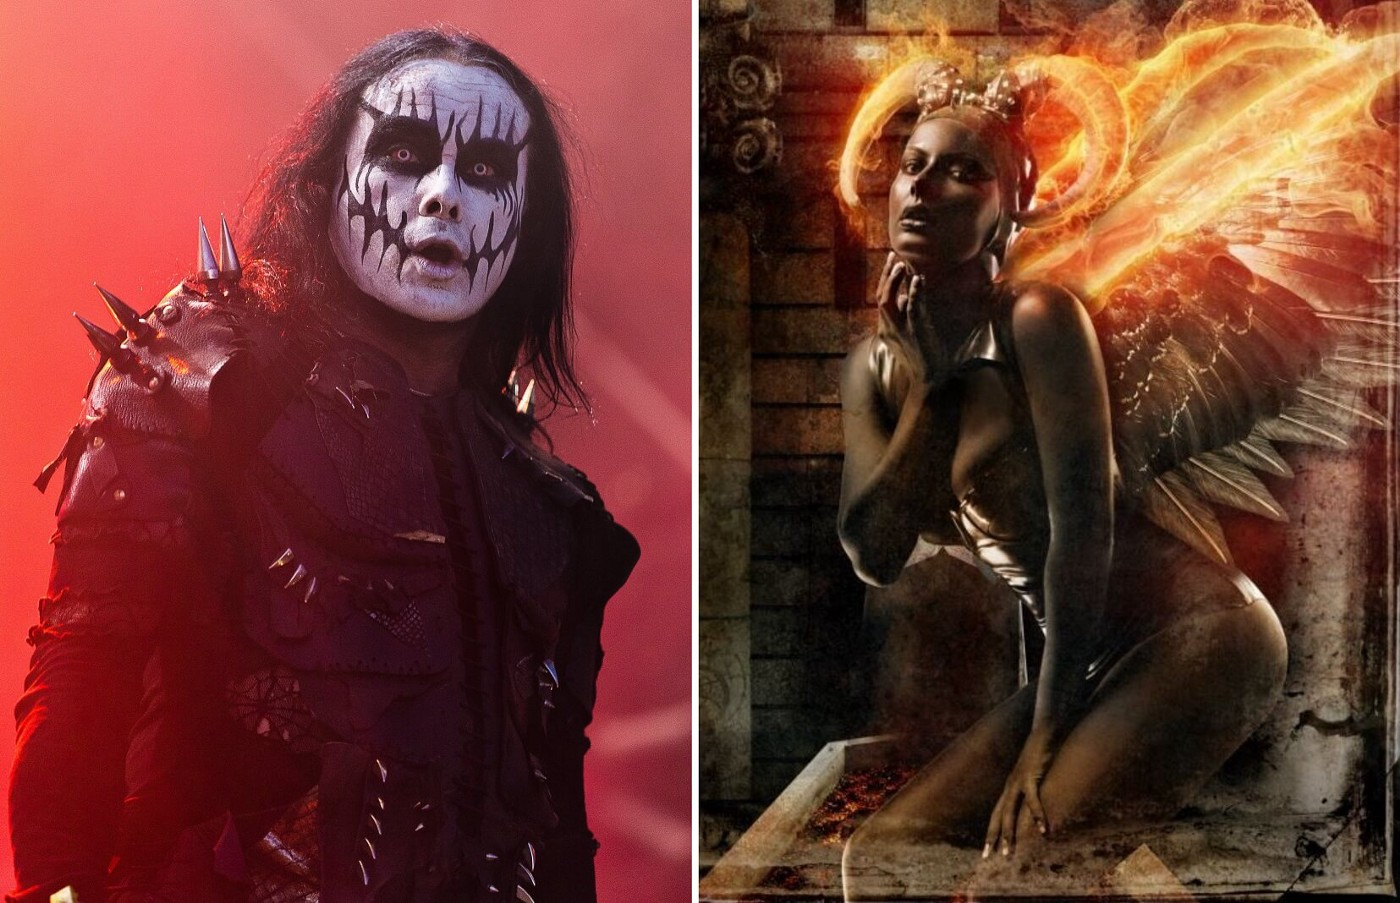 Dani Filth from Cradle of Filth on the left against red background on stage. Artwork from The Manticore and Other Horrors on the left showing a female figure with fiery horns and wings.